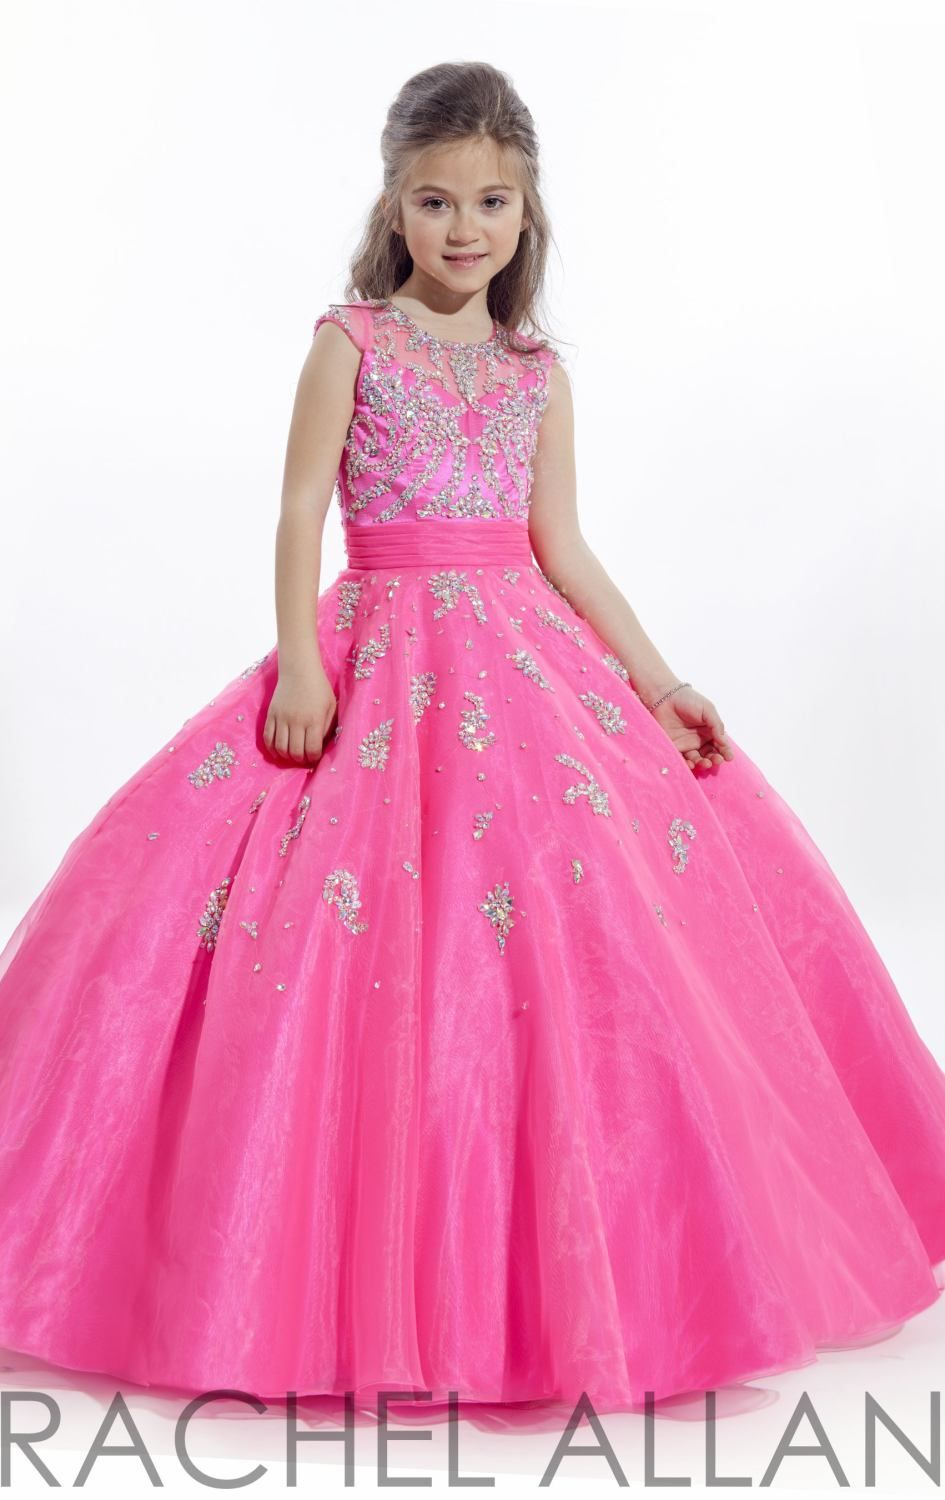 17dd85c85a5ff party dresses for 7 year olds - Google Search | dresses | Afton's ...